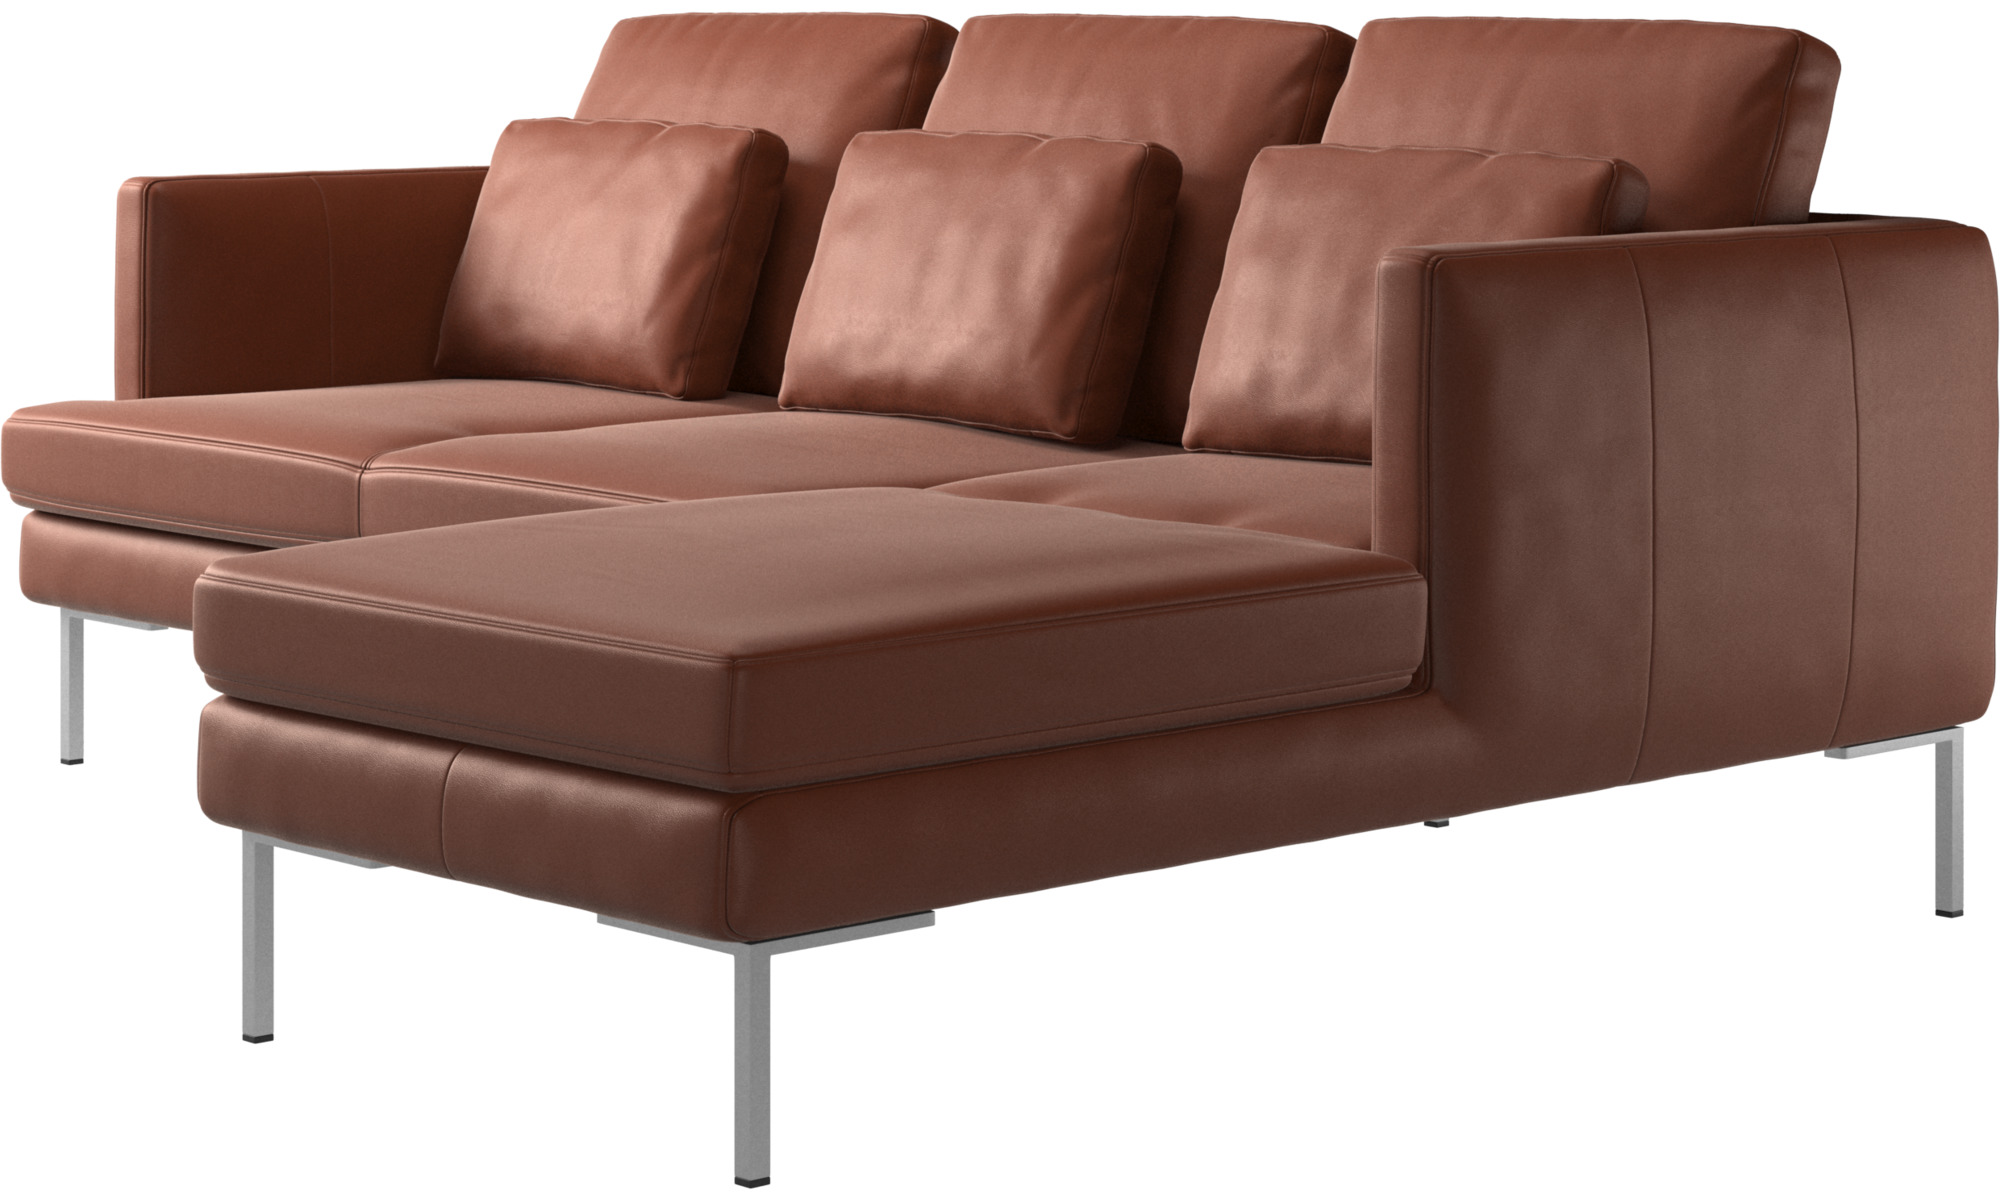 Chaise Lounge Sofas Istra 2 Sofa With